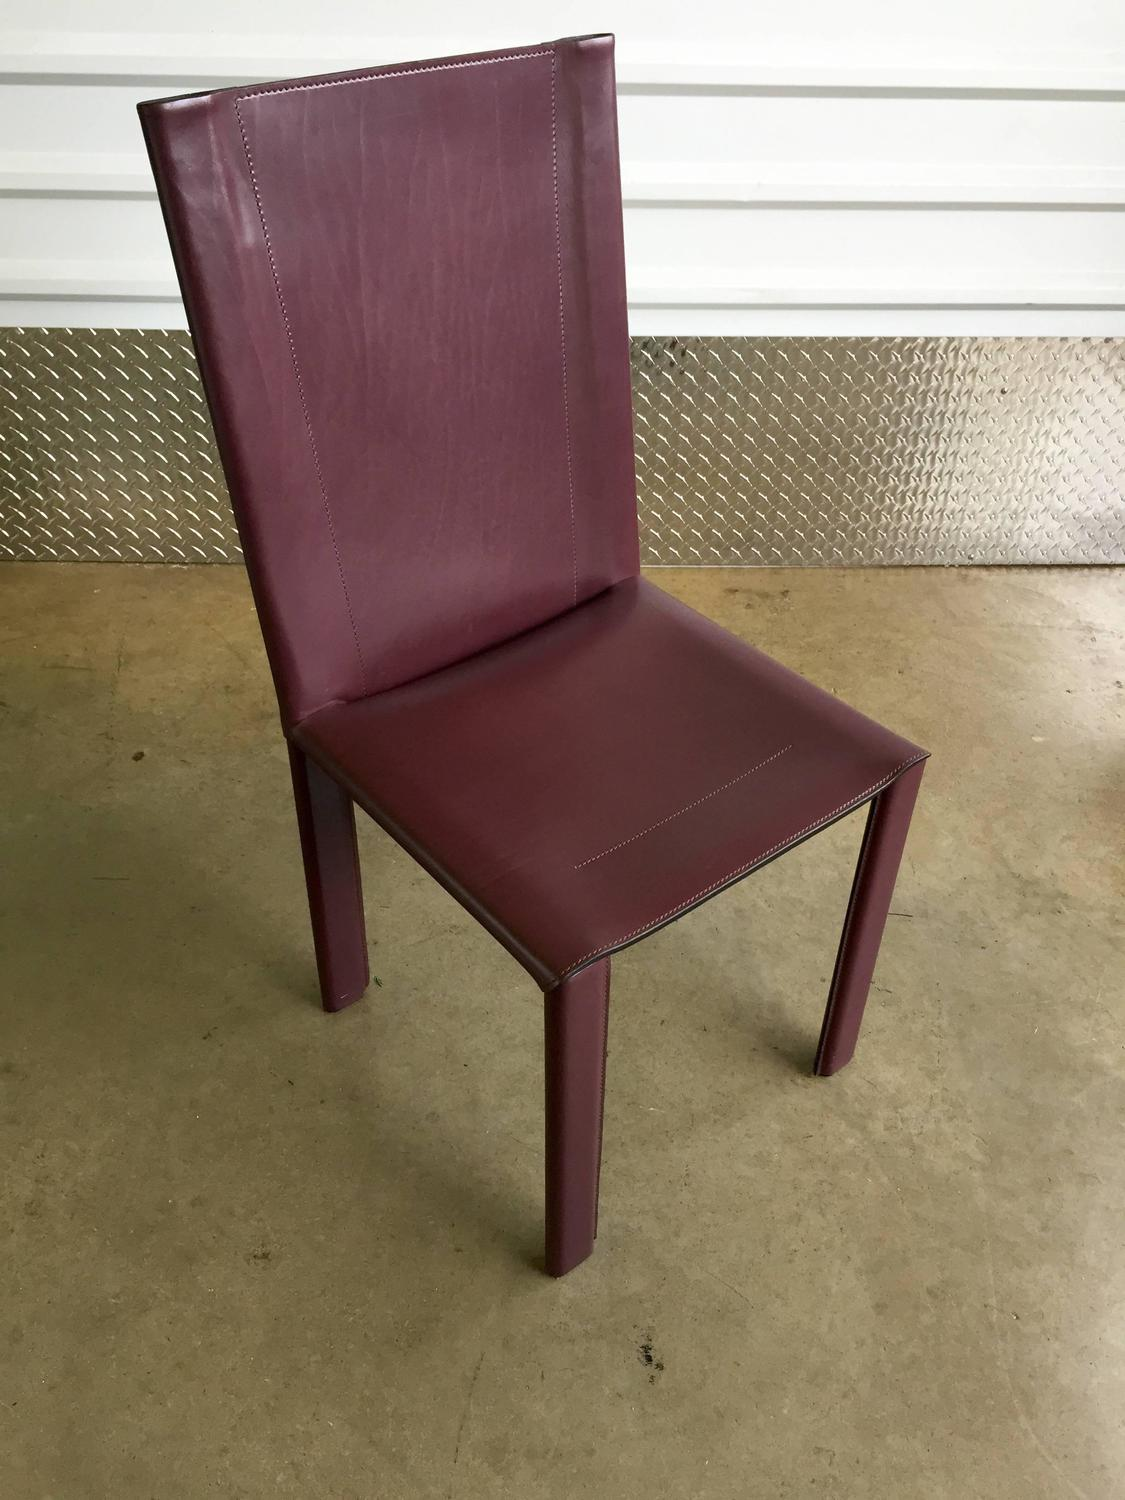 Impressive bordeaux leather and steel dining chairs by for Leather and steel dining chairs